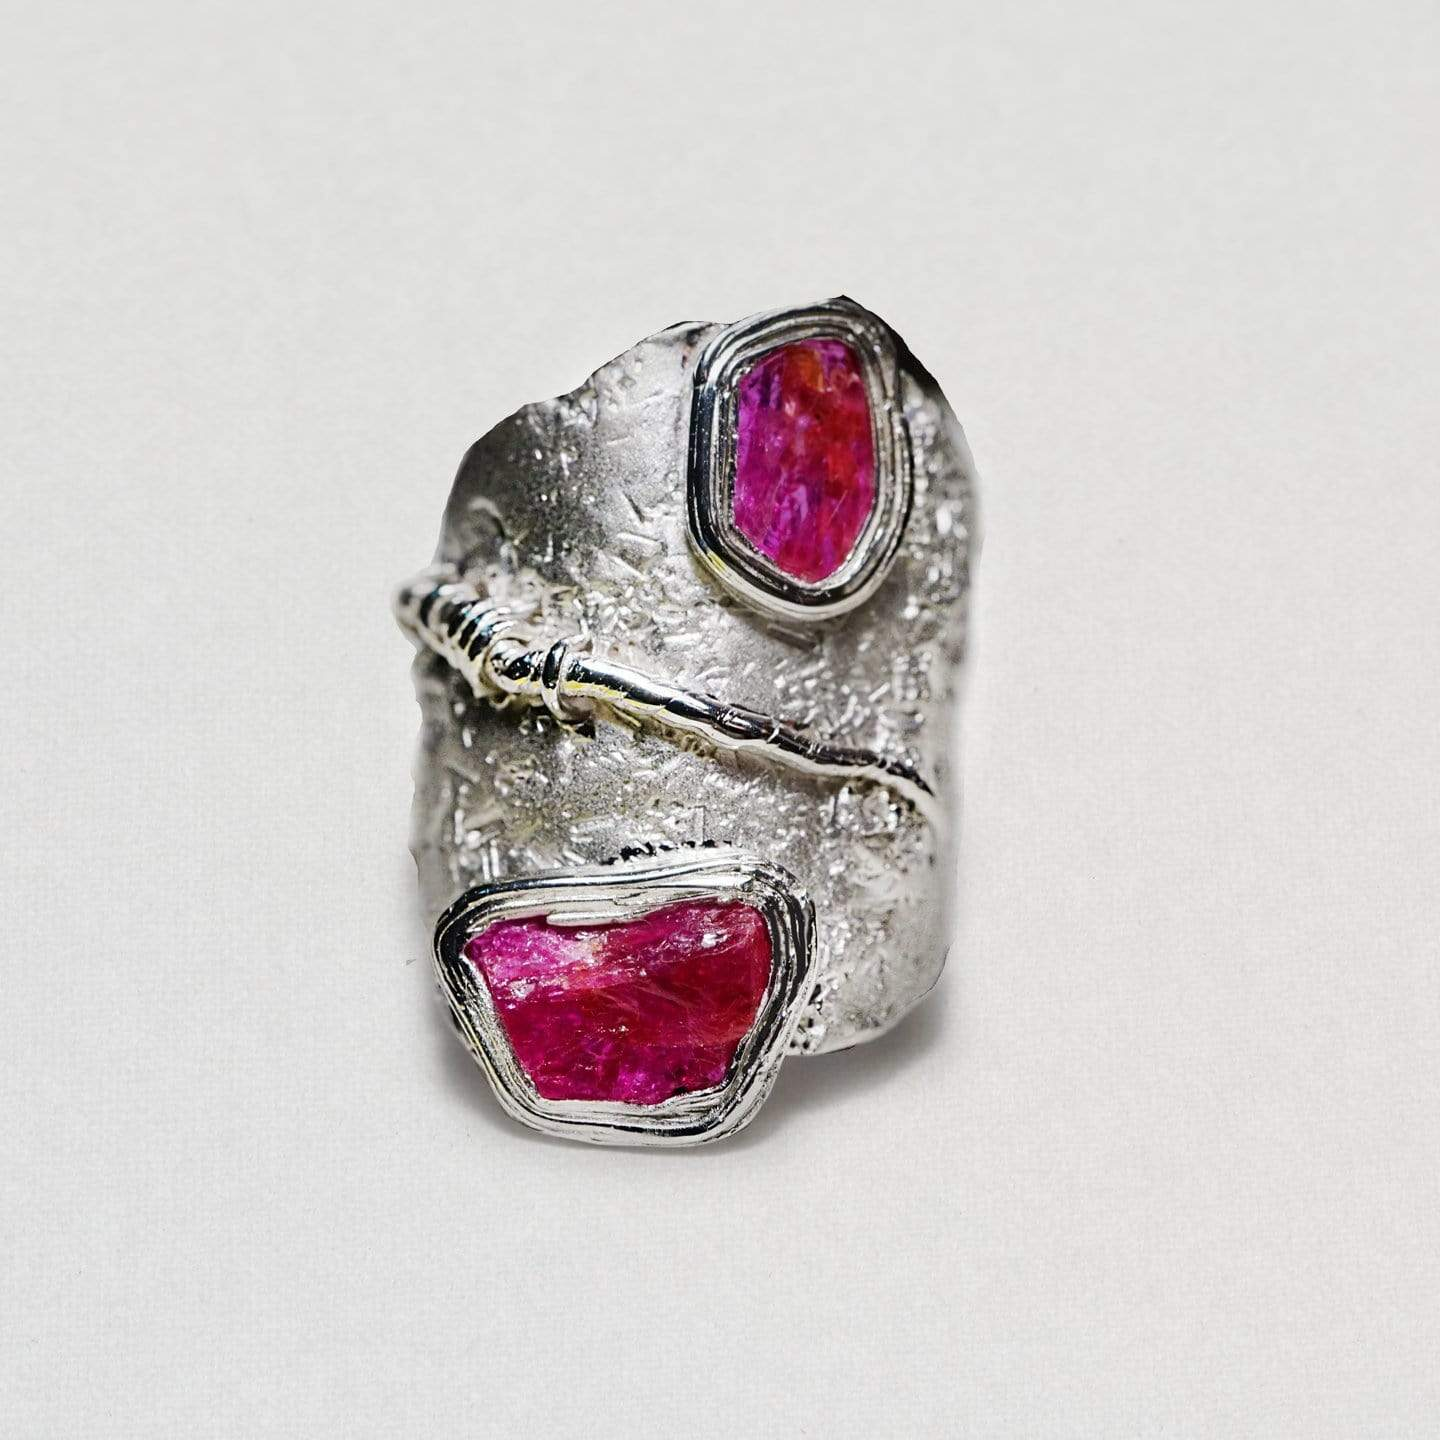 Trista Ring, Handmade, Rhodium, Ruby, silver, spo-disabled, StoneColor:PinkRuby, Style:Everyday, Type:StoneCandyScattered Ring